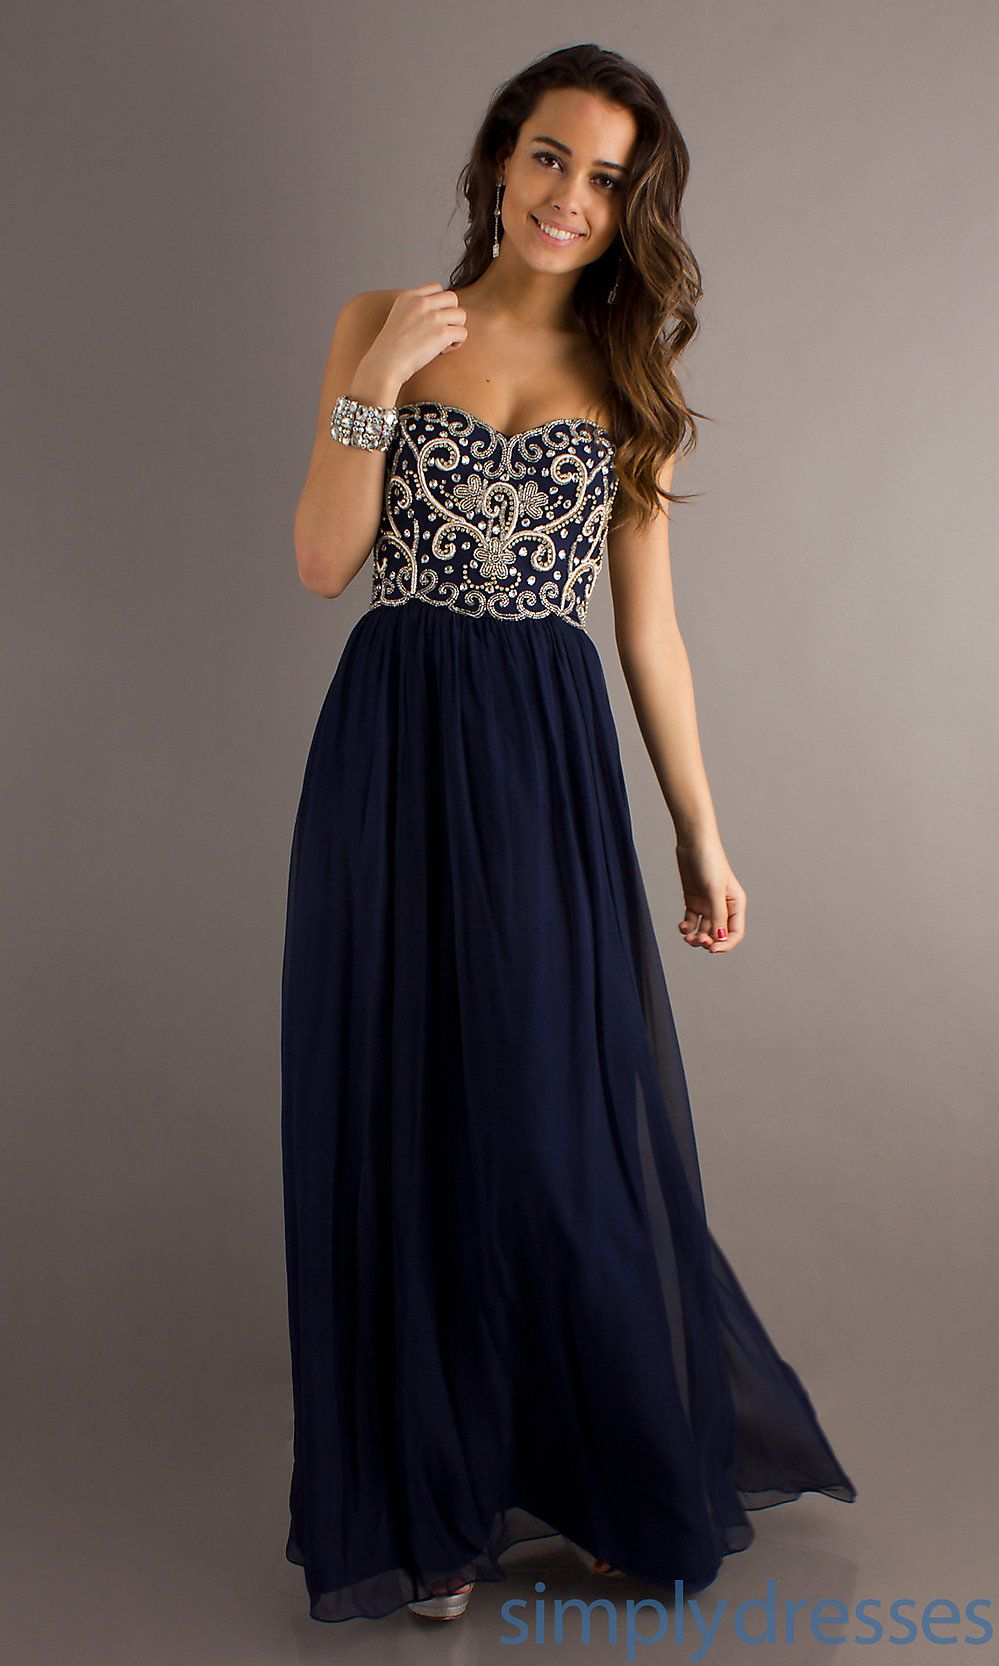 Bridesmaid dress navy lydia lydia lydia this with a grey jacket